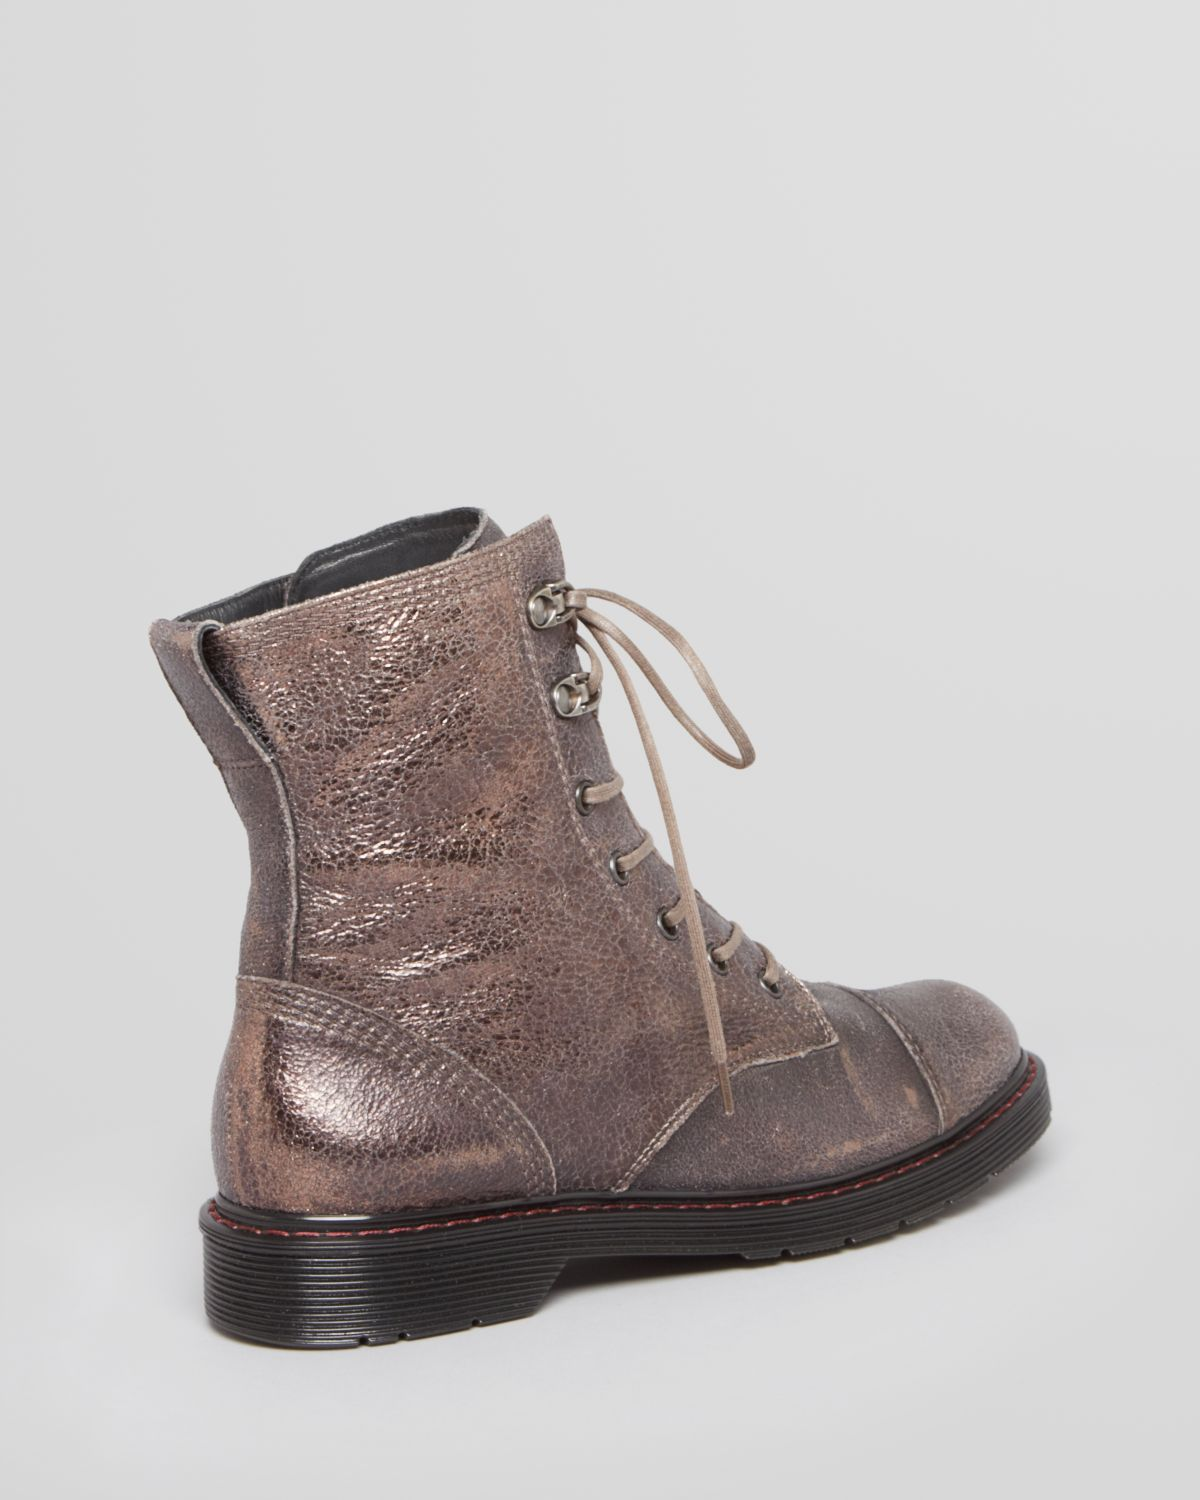 e57d2552a0e95 Lyst - Paul Green Lace Up Booties San Fran in Gray